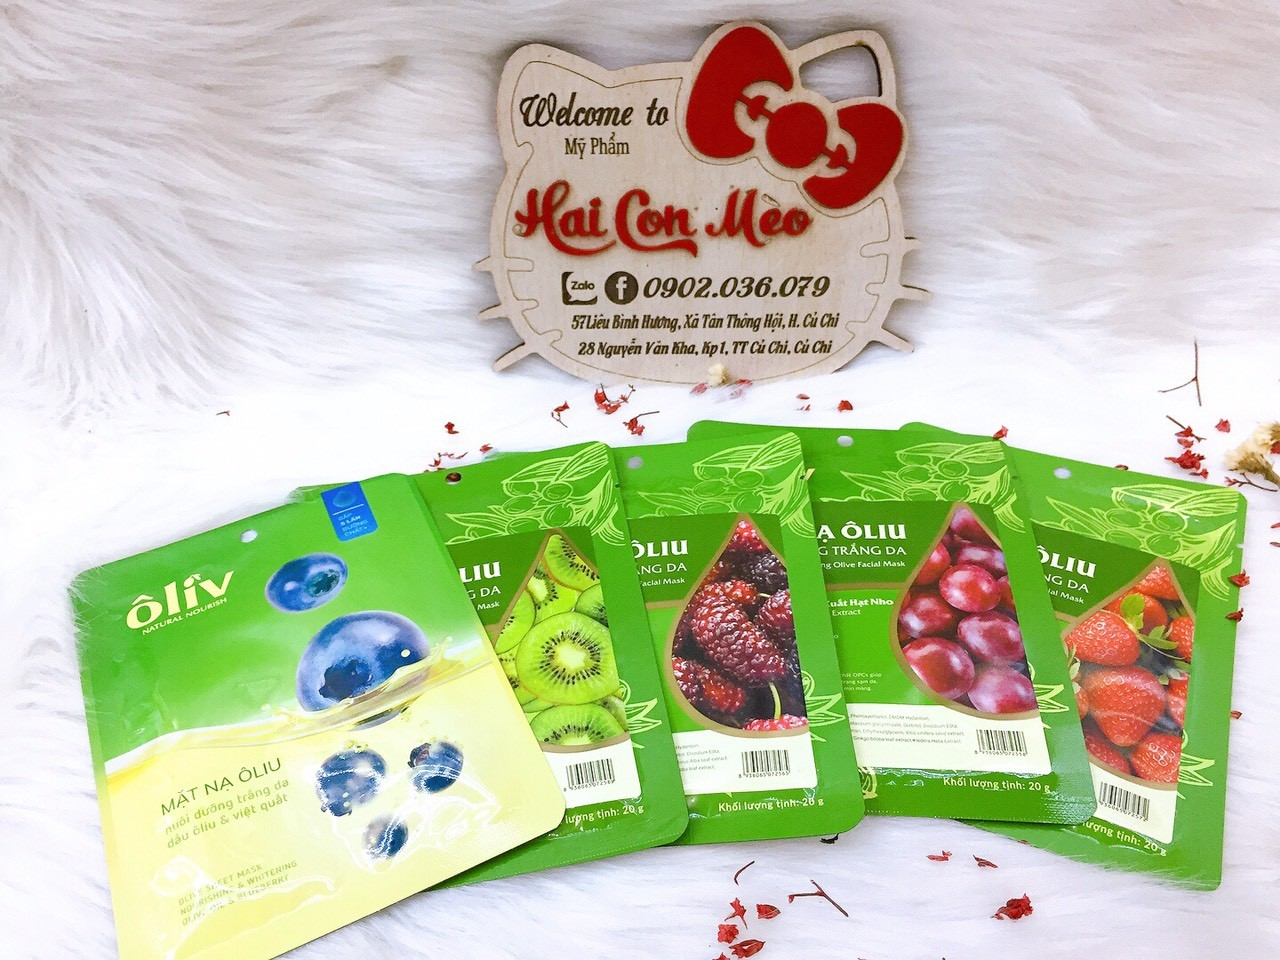 Mặt Nạ Oliv PURITE